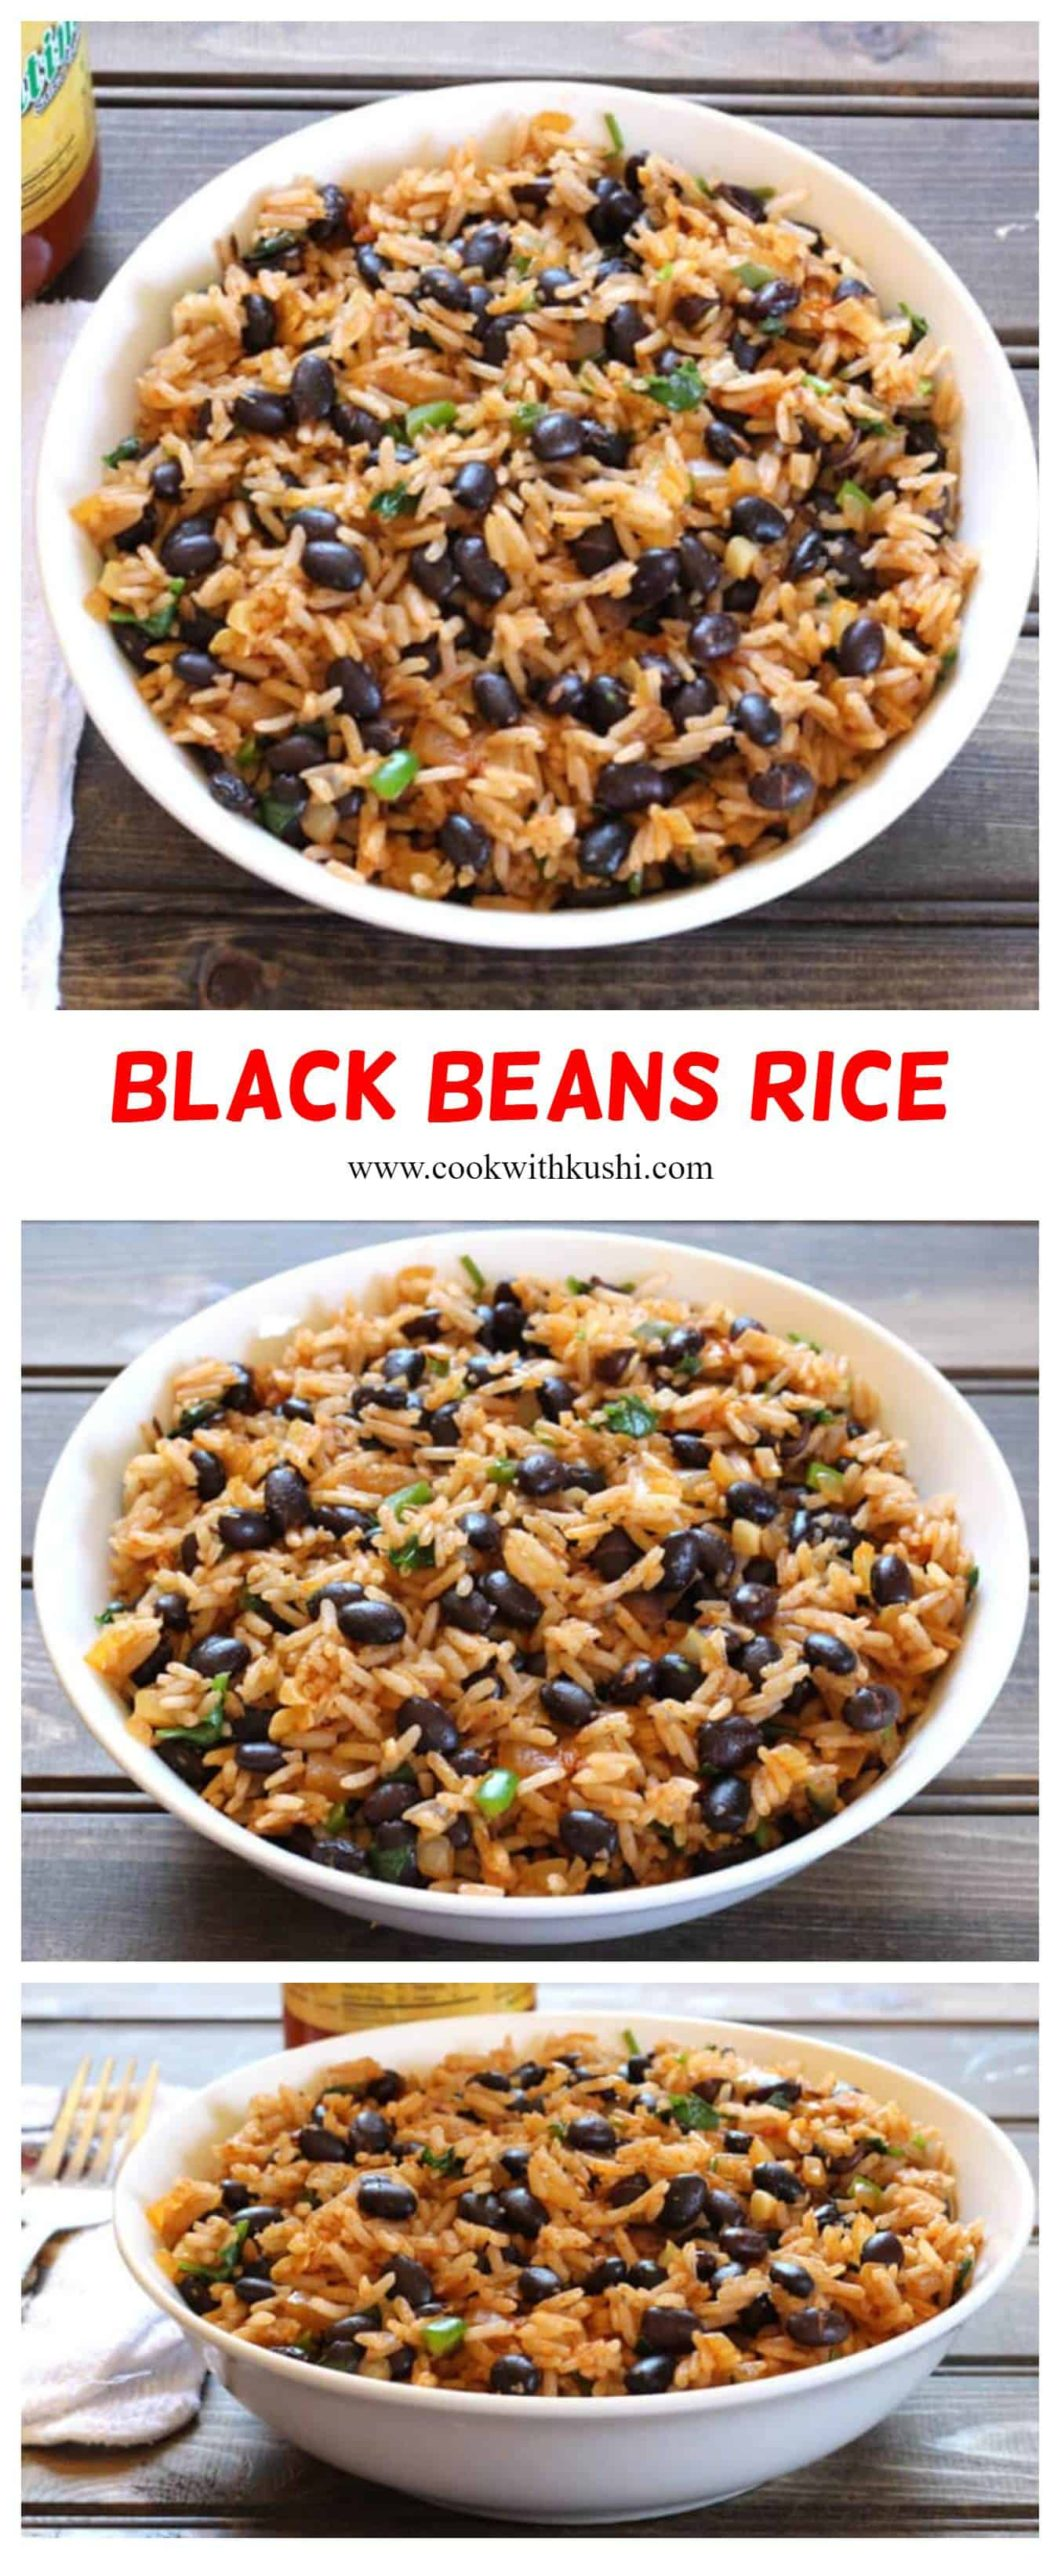 Black Beans Rice is spicy and incredibly delicious, nutty flavored vegetarian Mexican rice recipe that is a frequent dish at our dinner table.